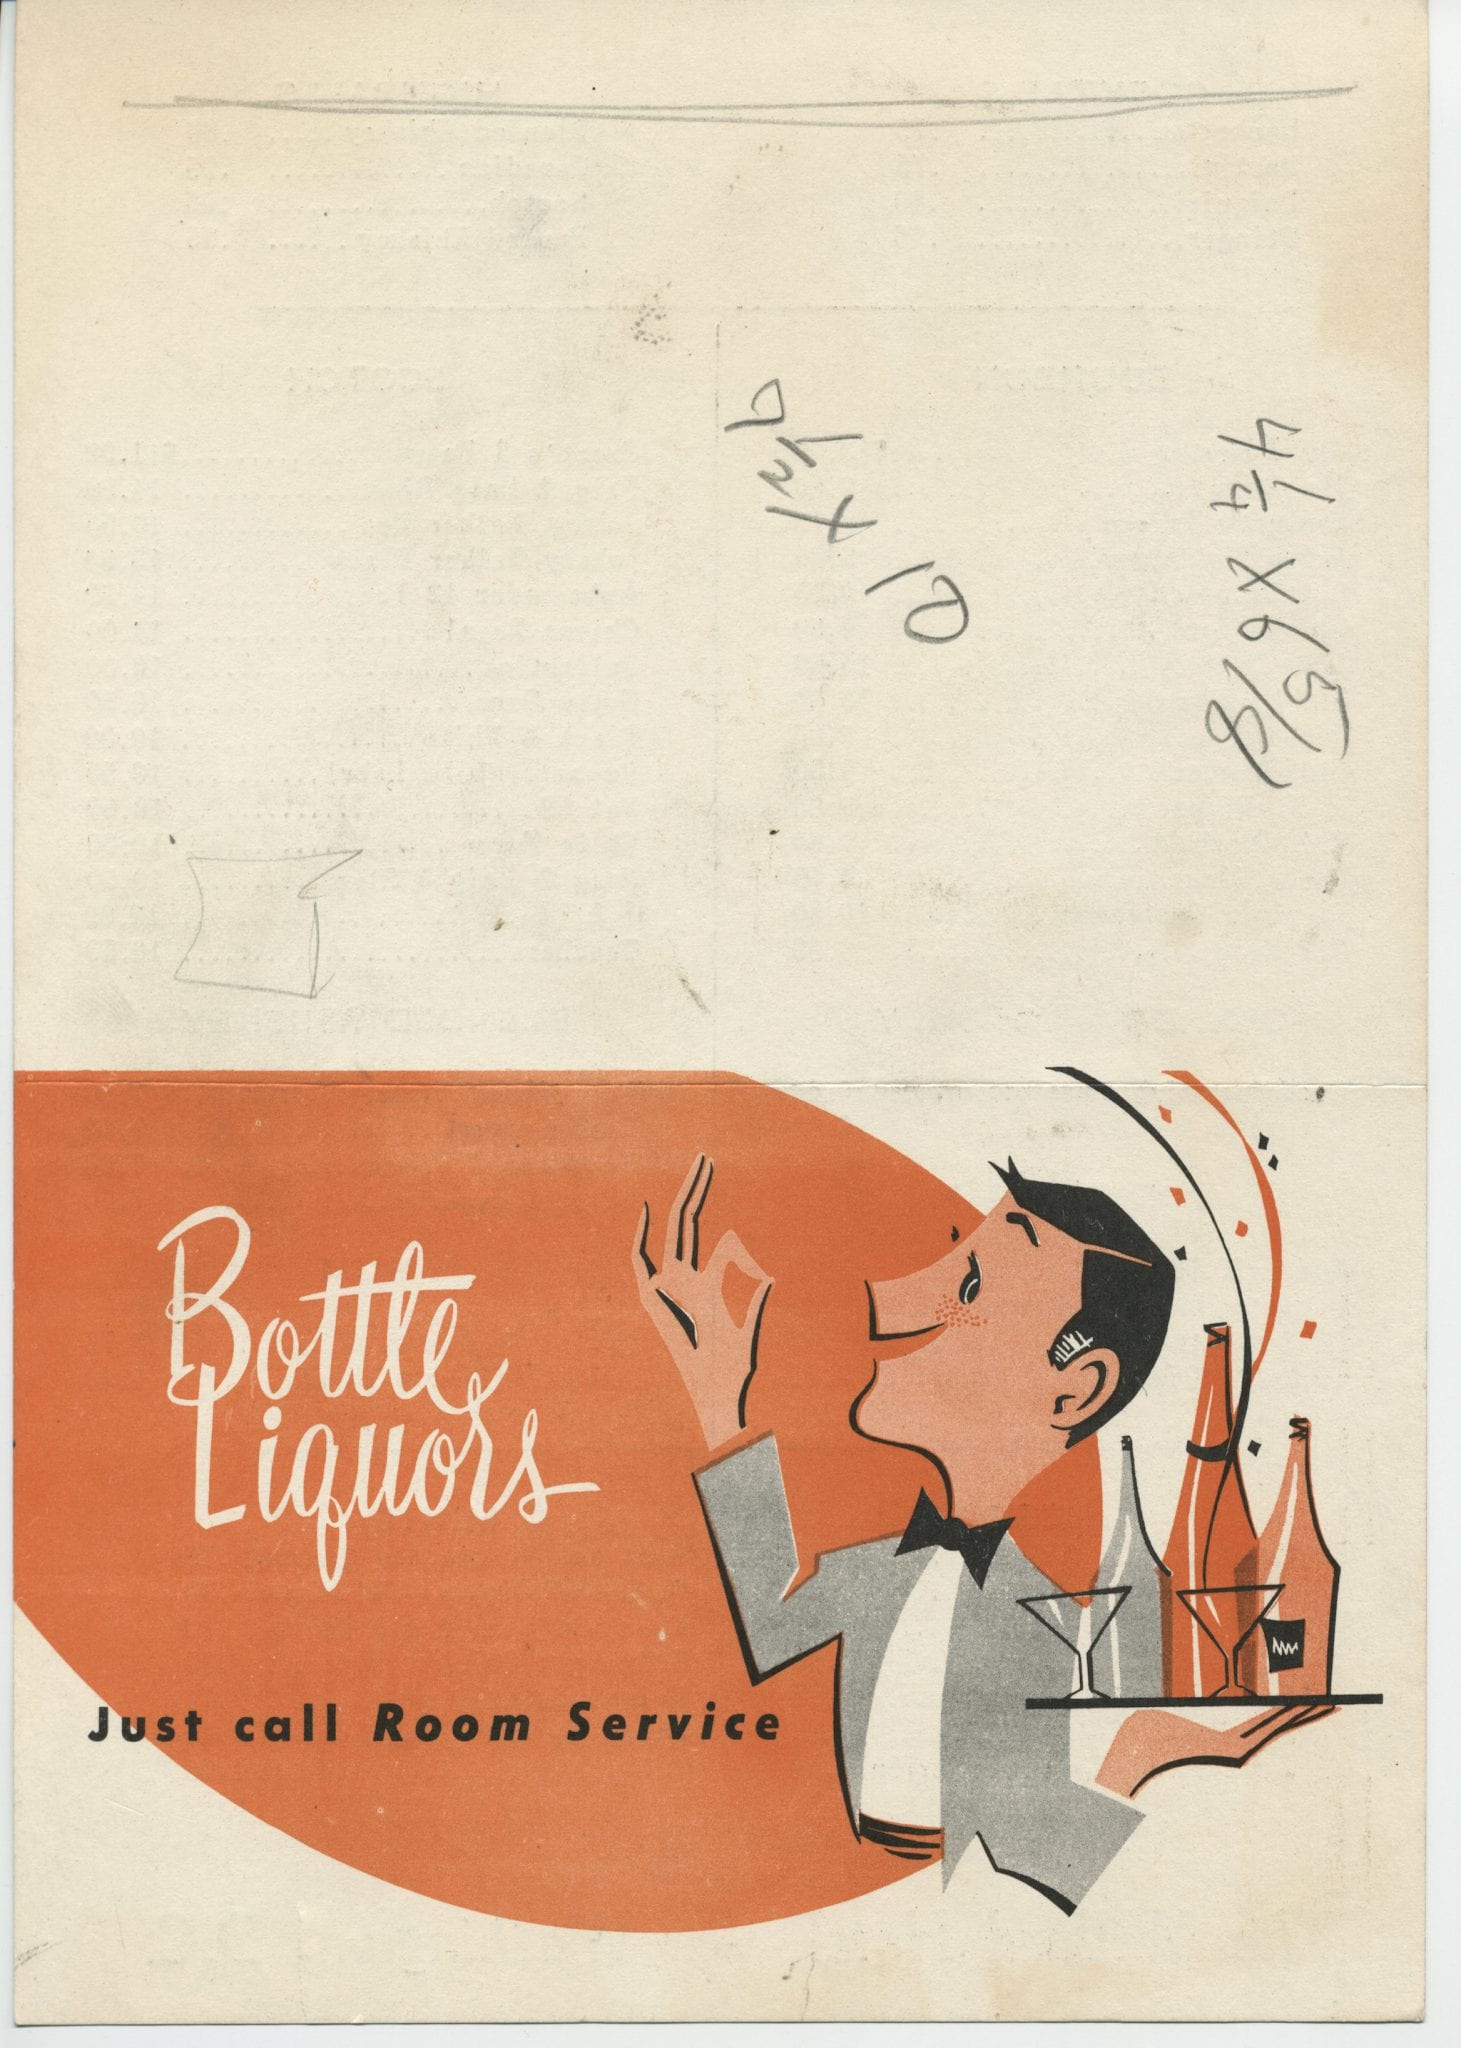 A menu for bottle liquors room service at the Willard Hotel.